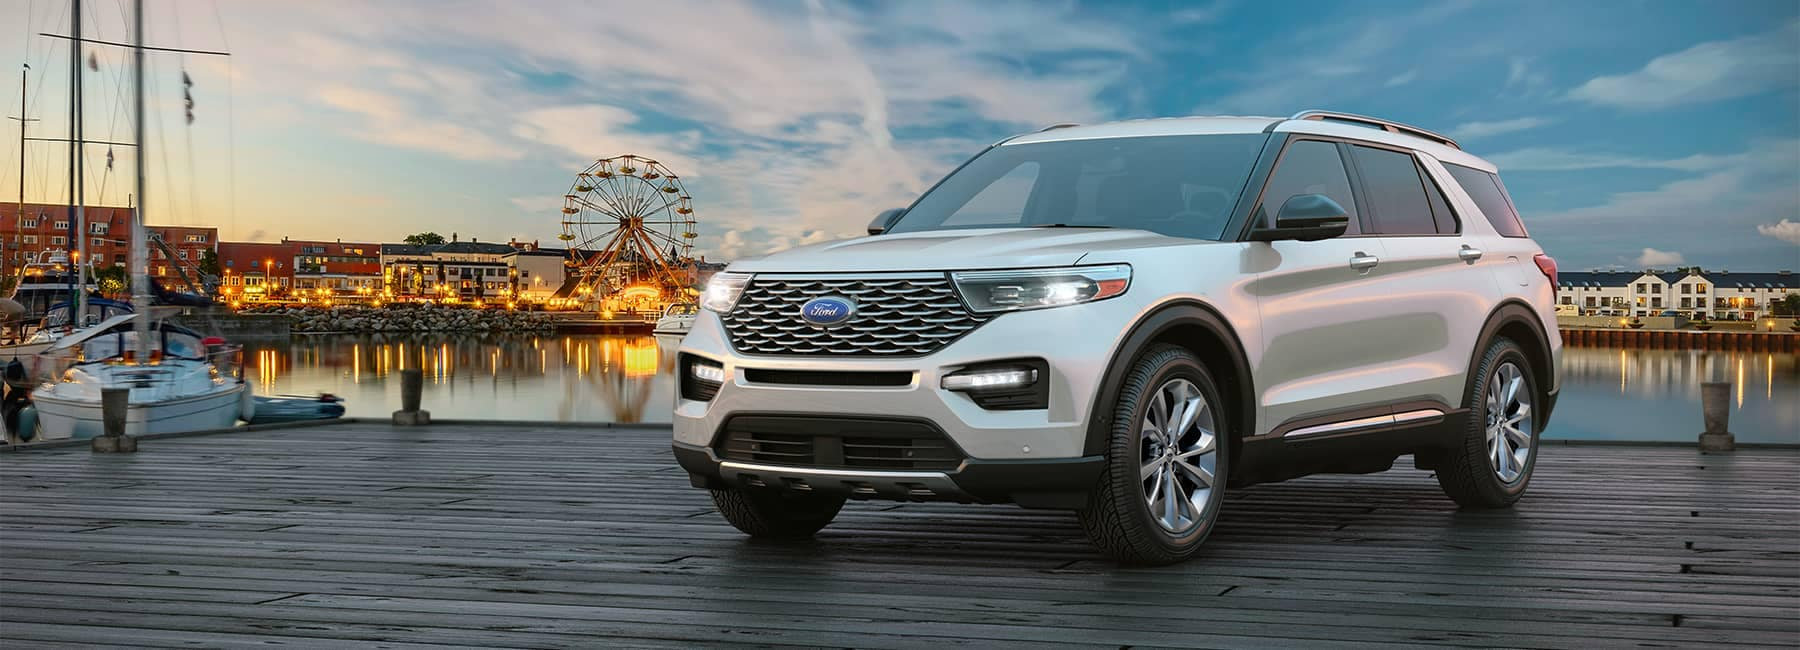 White 2021 Ford Explorer parked on a boardwalk with a ferris wheel in the background_mobile